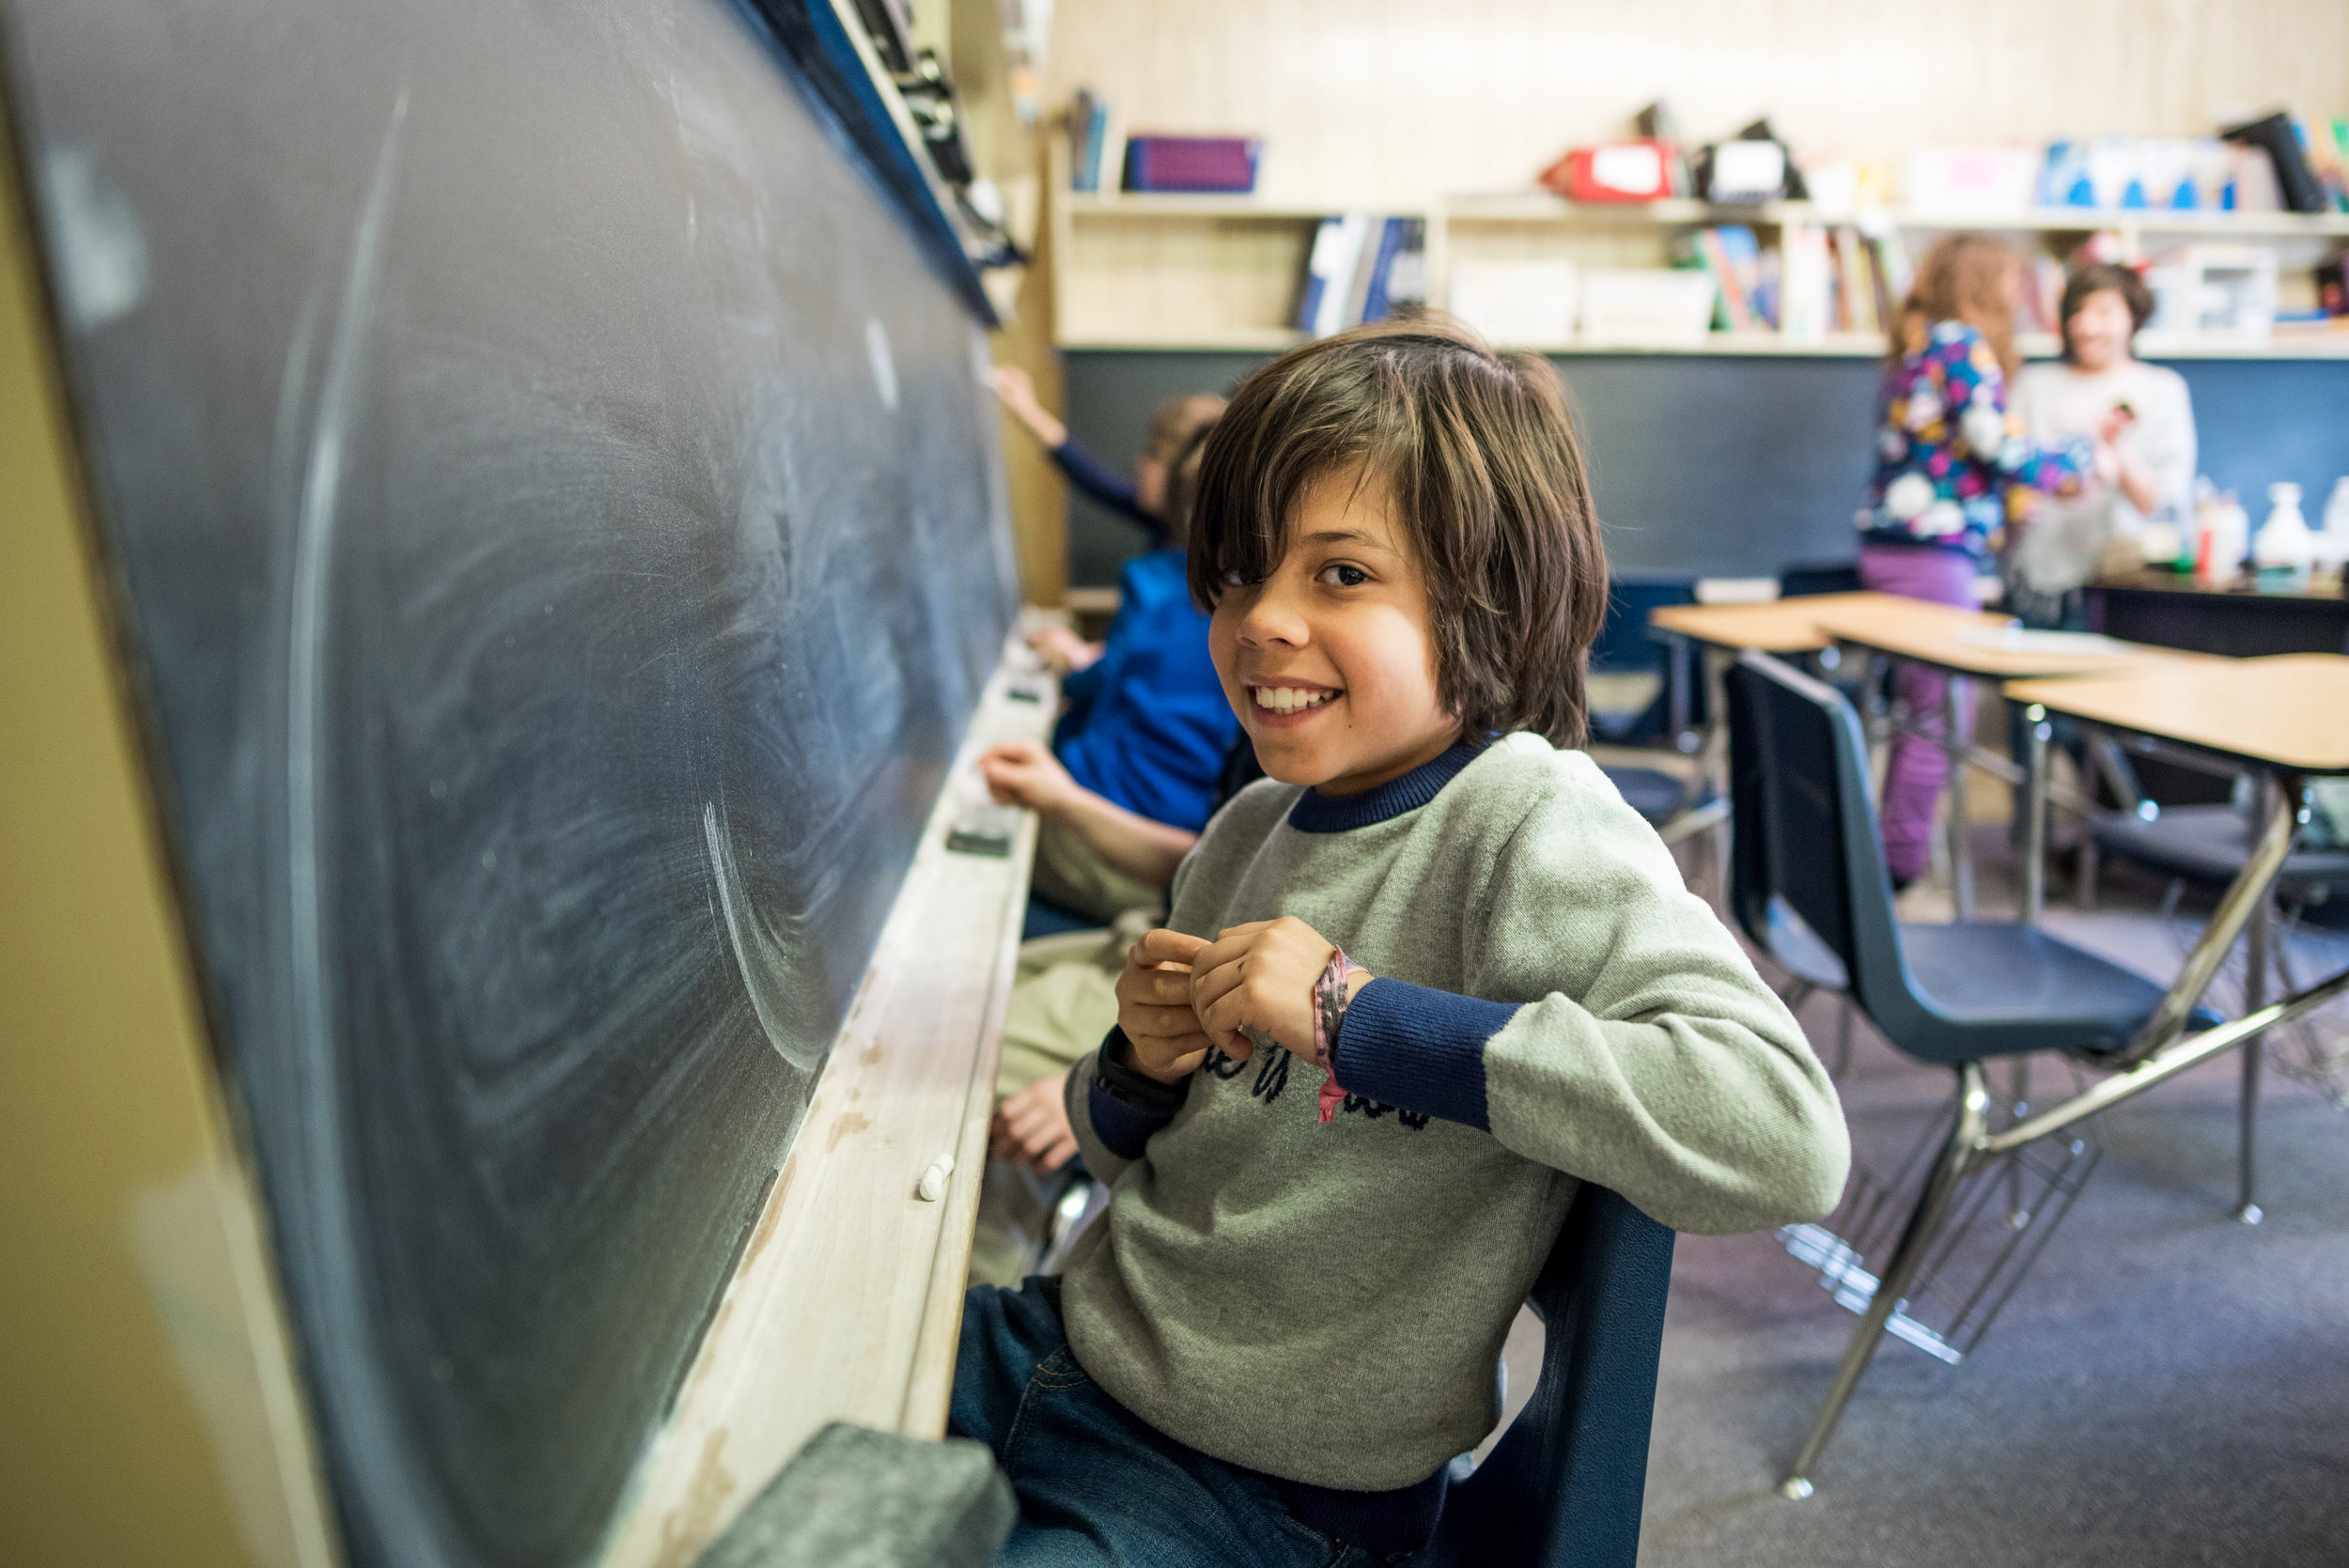 Oakland School allows students to learn at their own pace.